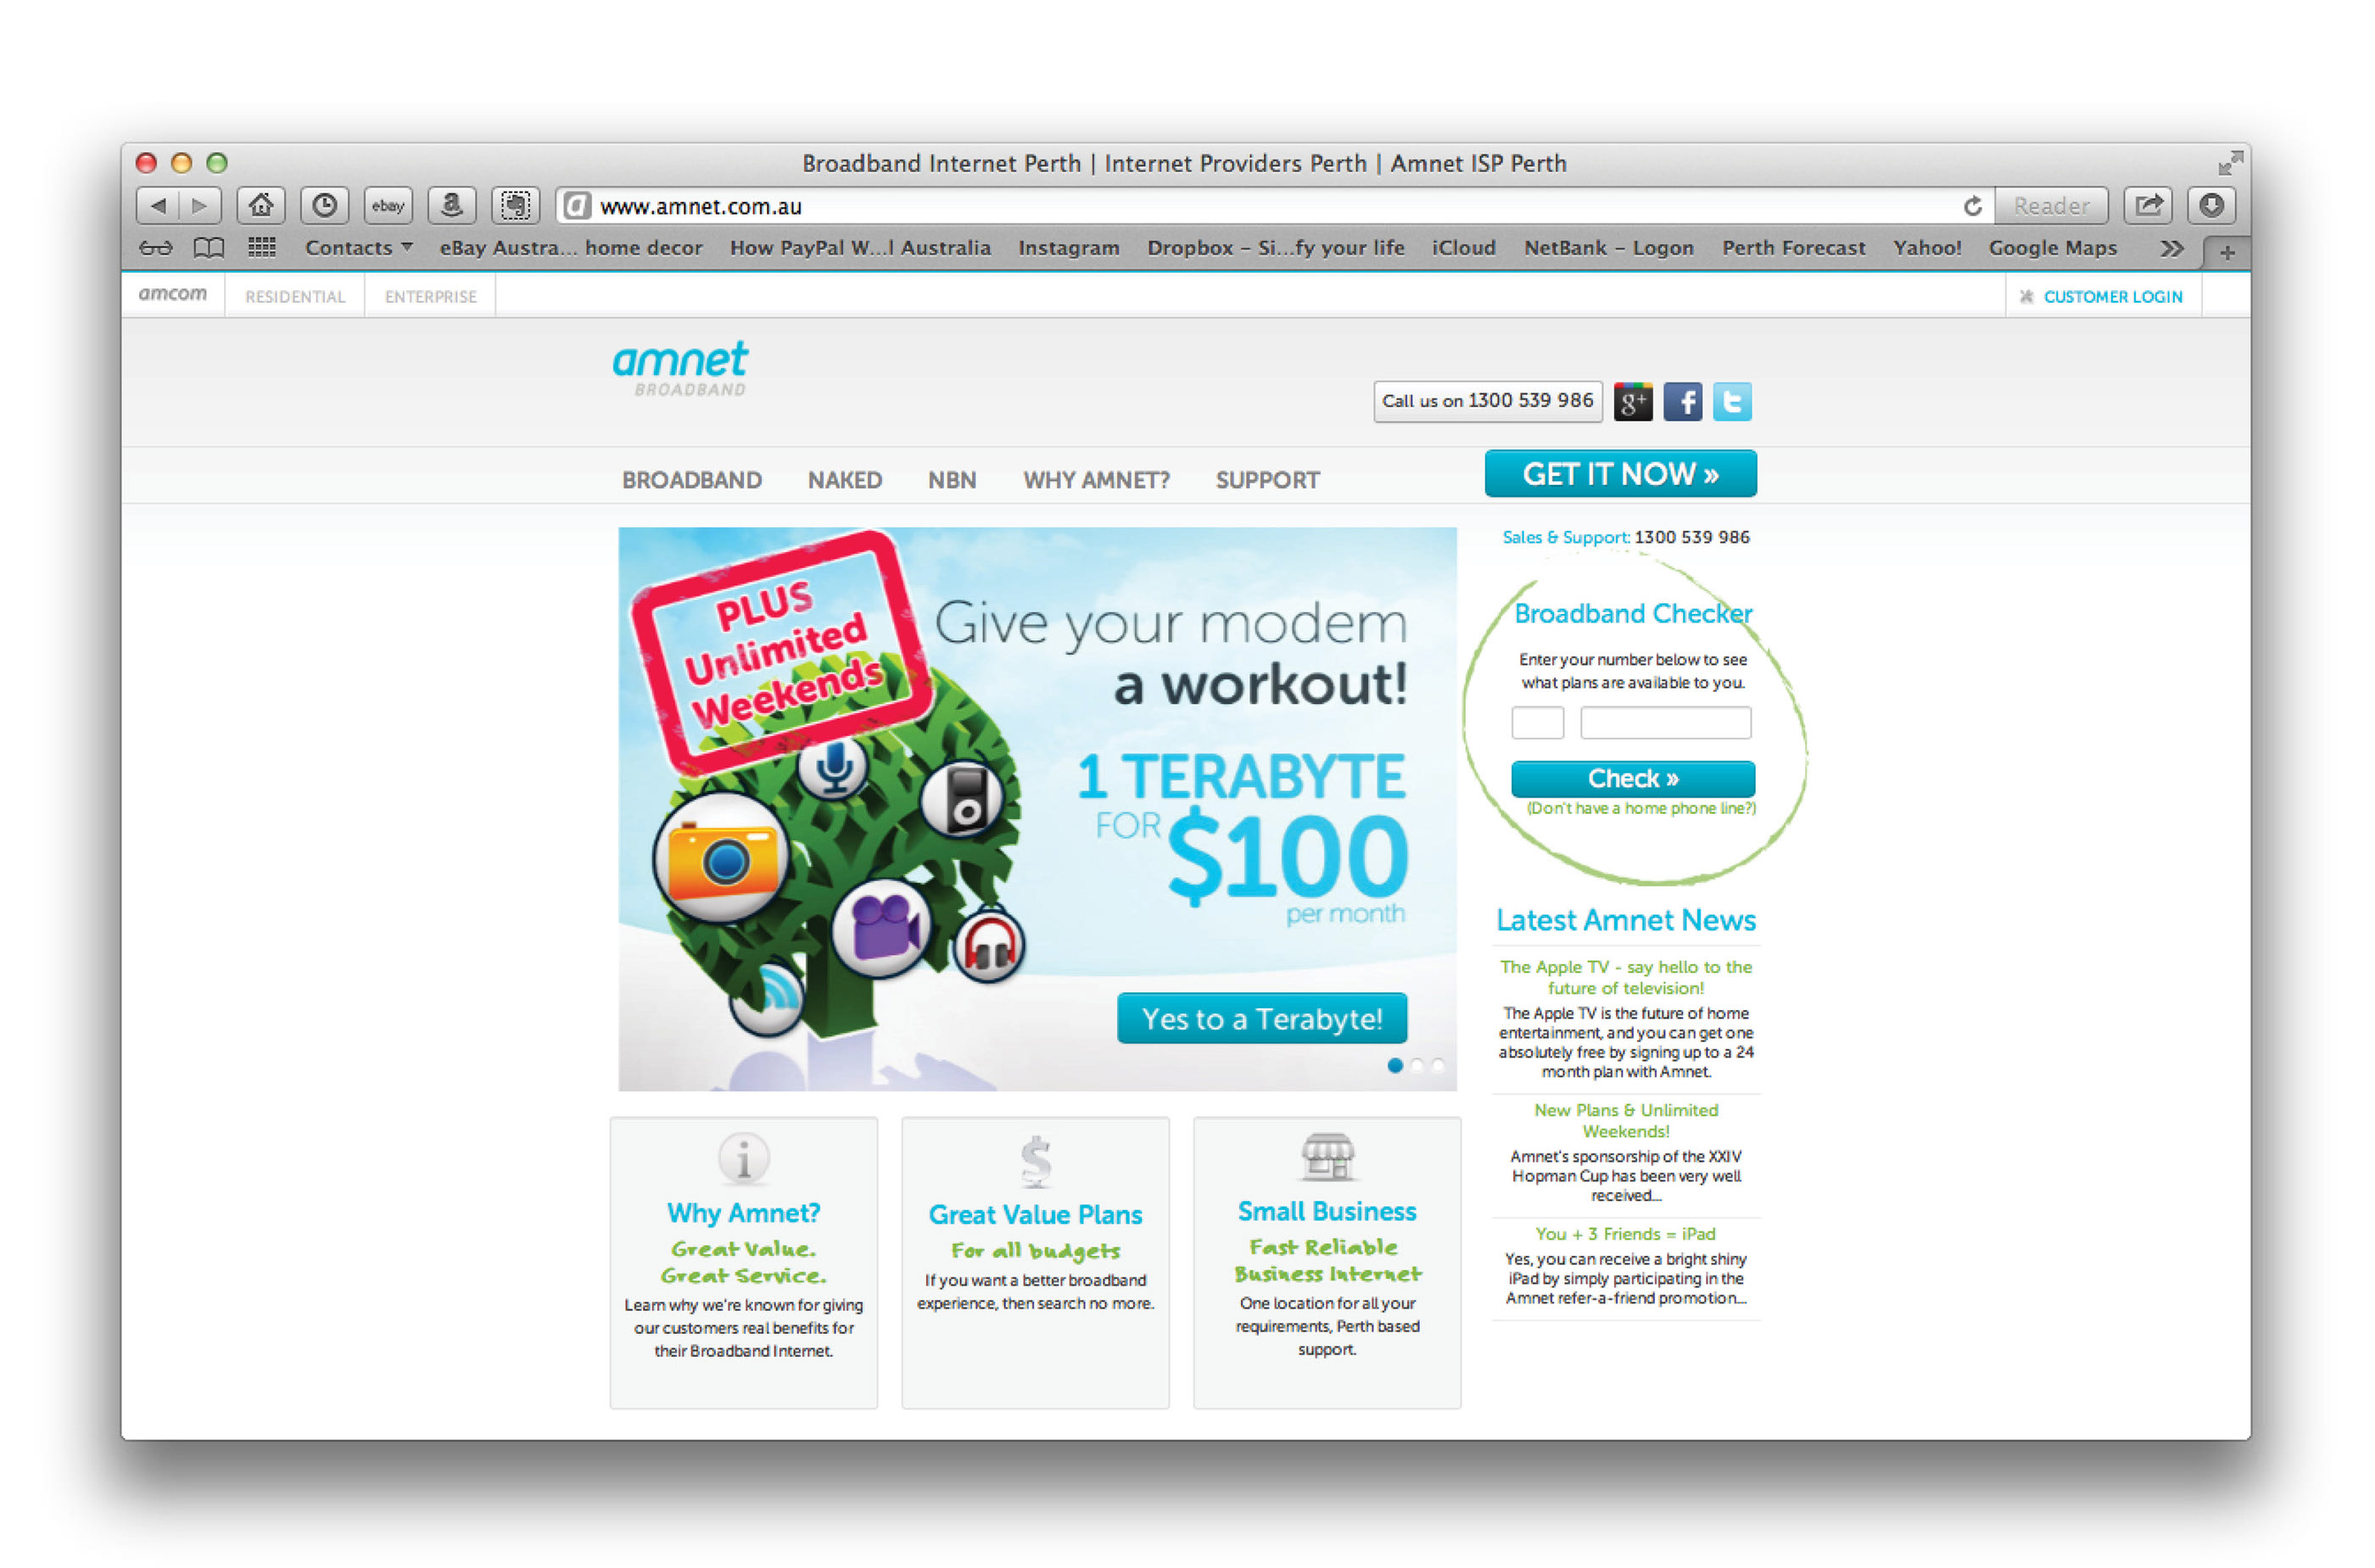 amnet web site redesign on Behance